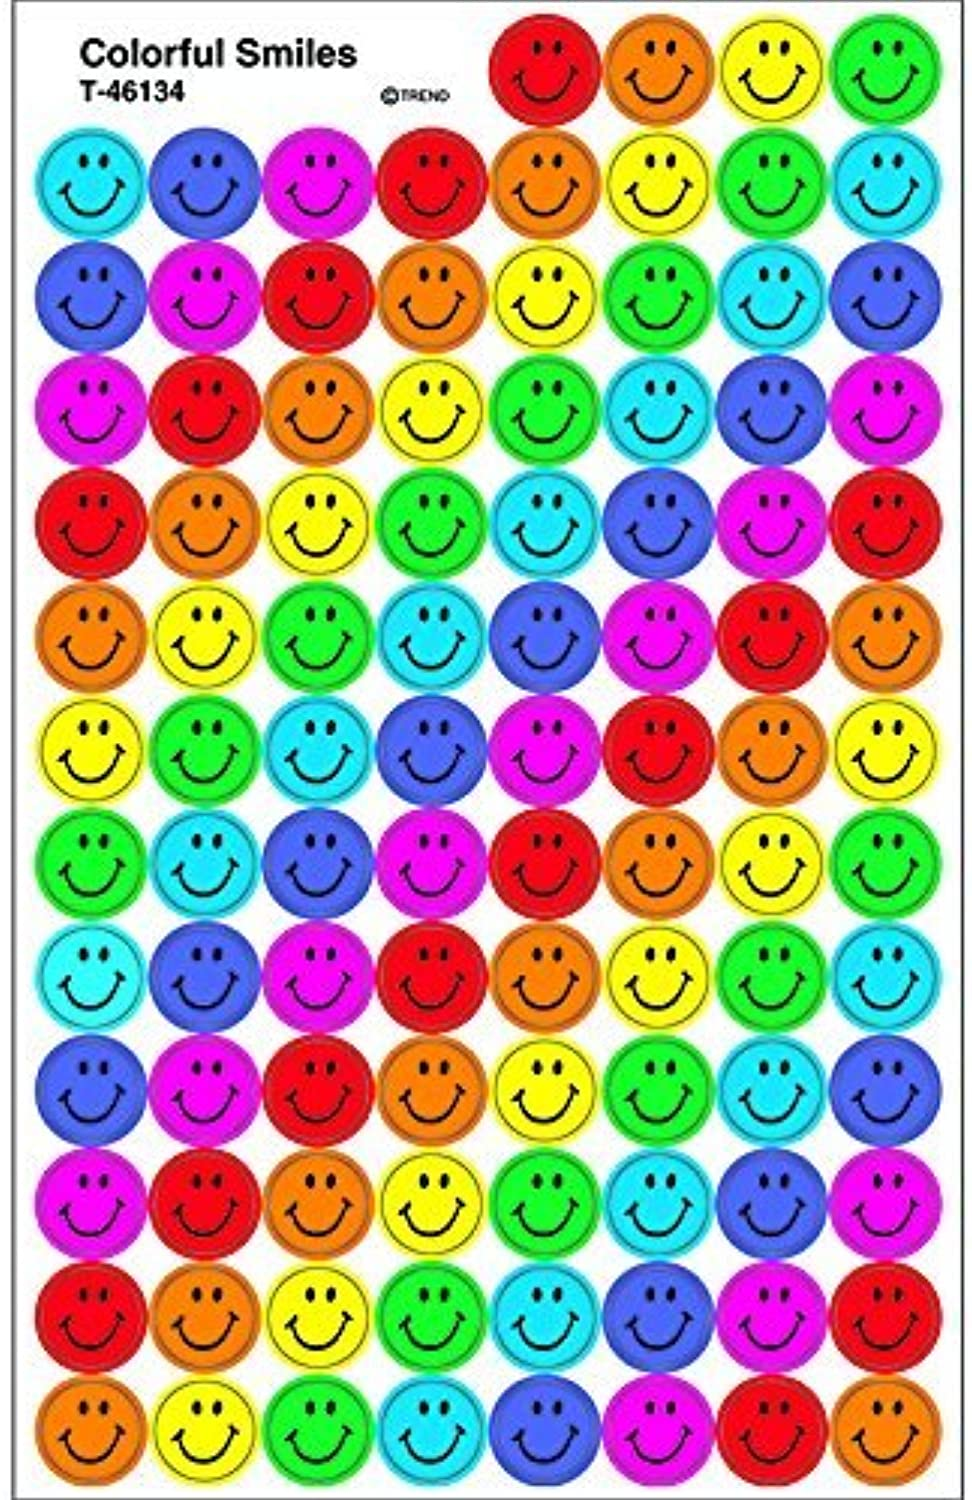 Trend Colourful Smiles School Stickers by TREND ENTERPRISES INC.